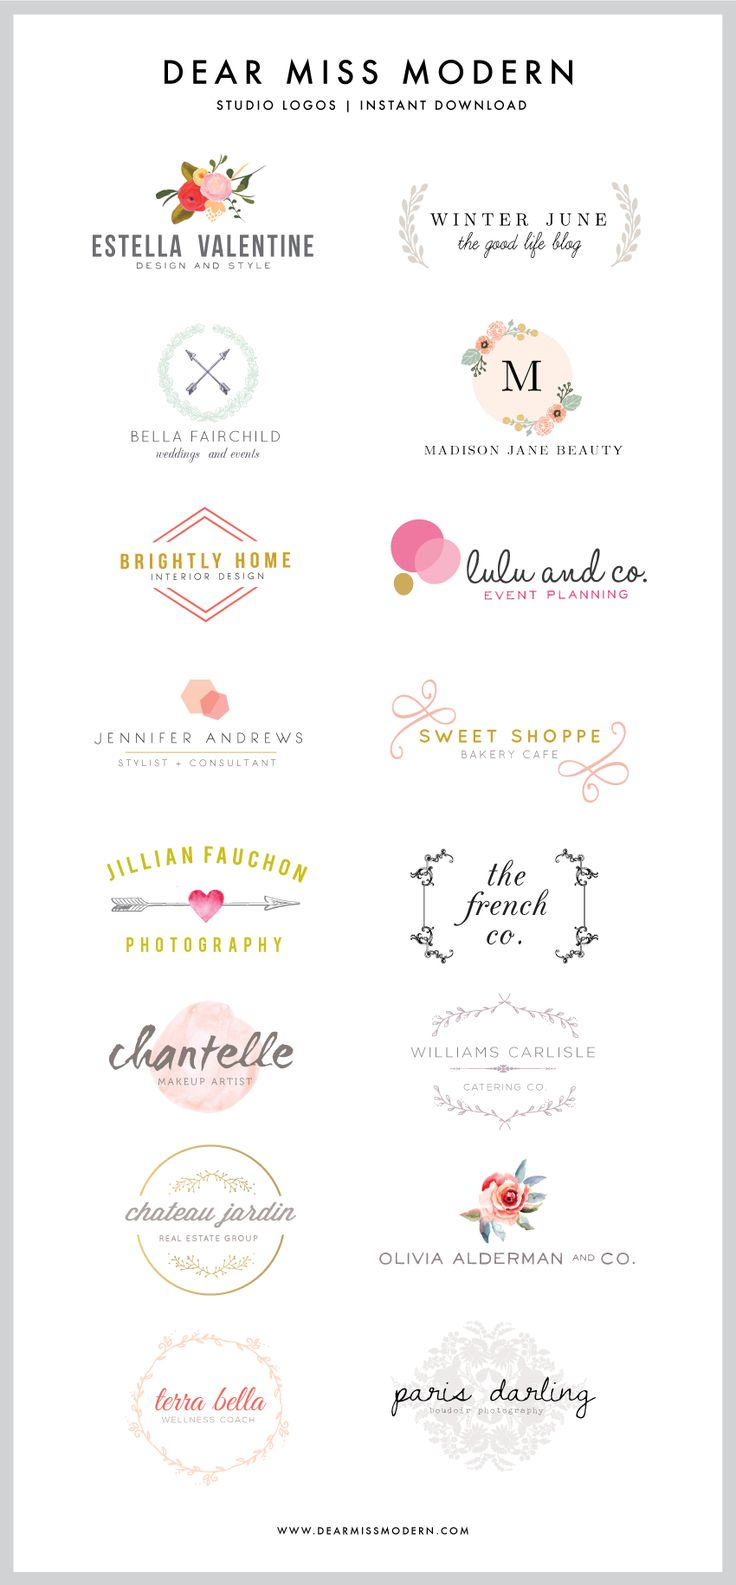 UPDATE NOVEMBER 26th: NEW LOGOS IN THE DEAR MISS MODERN SHOP! Click Here to see them all:  Miss Modern Studio Logos Original post: Ok, here it is:  I LOVE to design logos, and I adore making them available in the Dear Miss Modern Shop for you guys.  New logos are WAY overdue (embarrassingly so), and […]